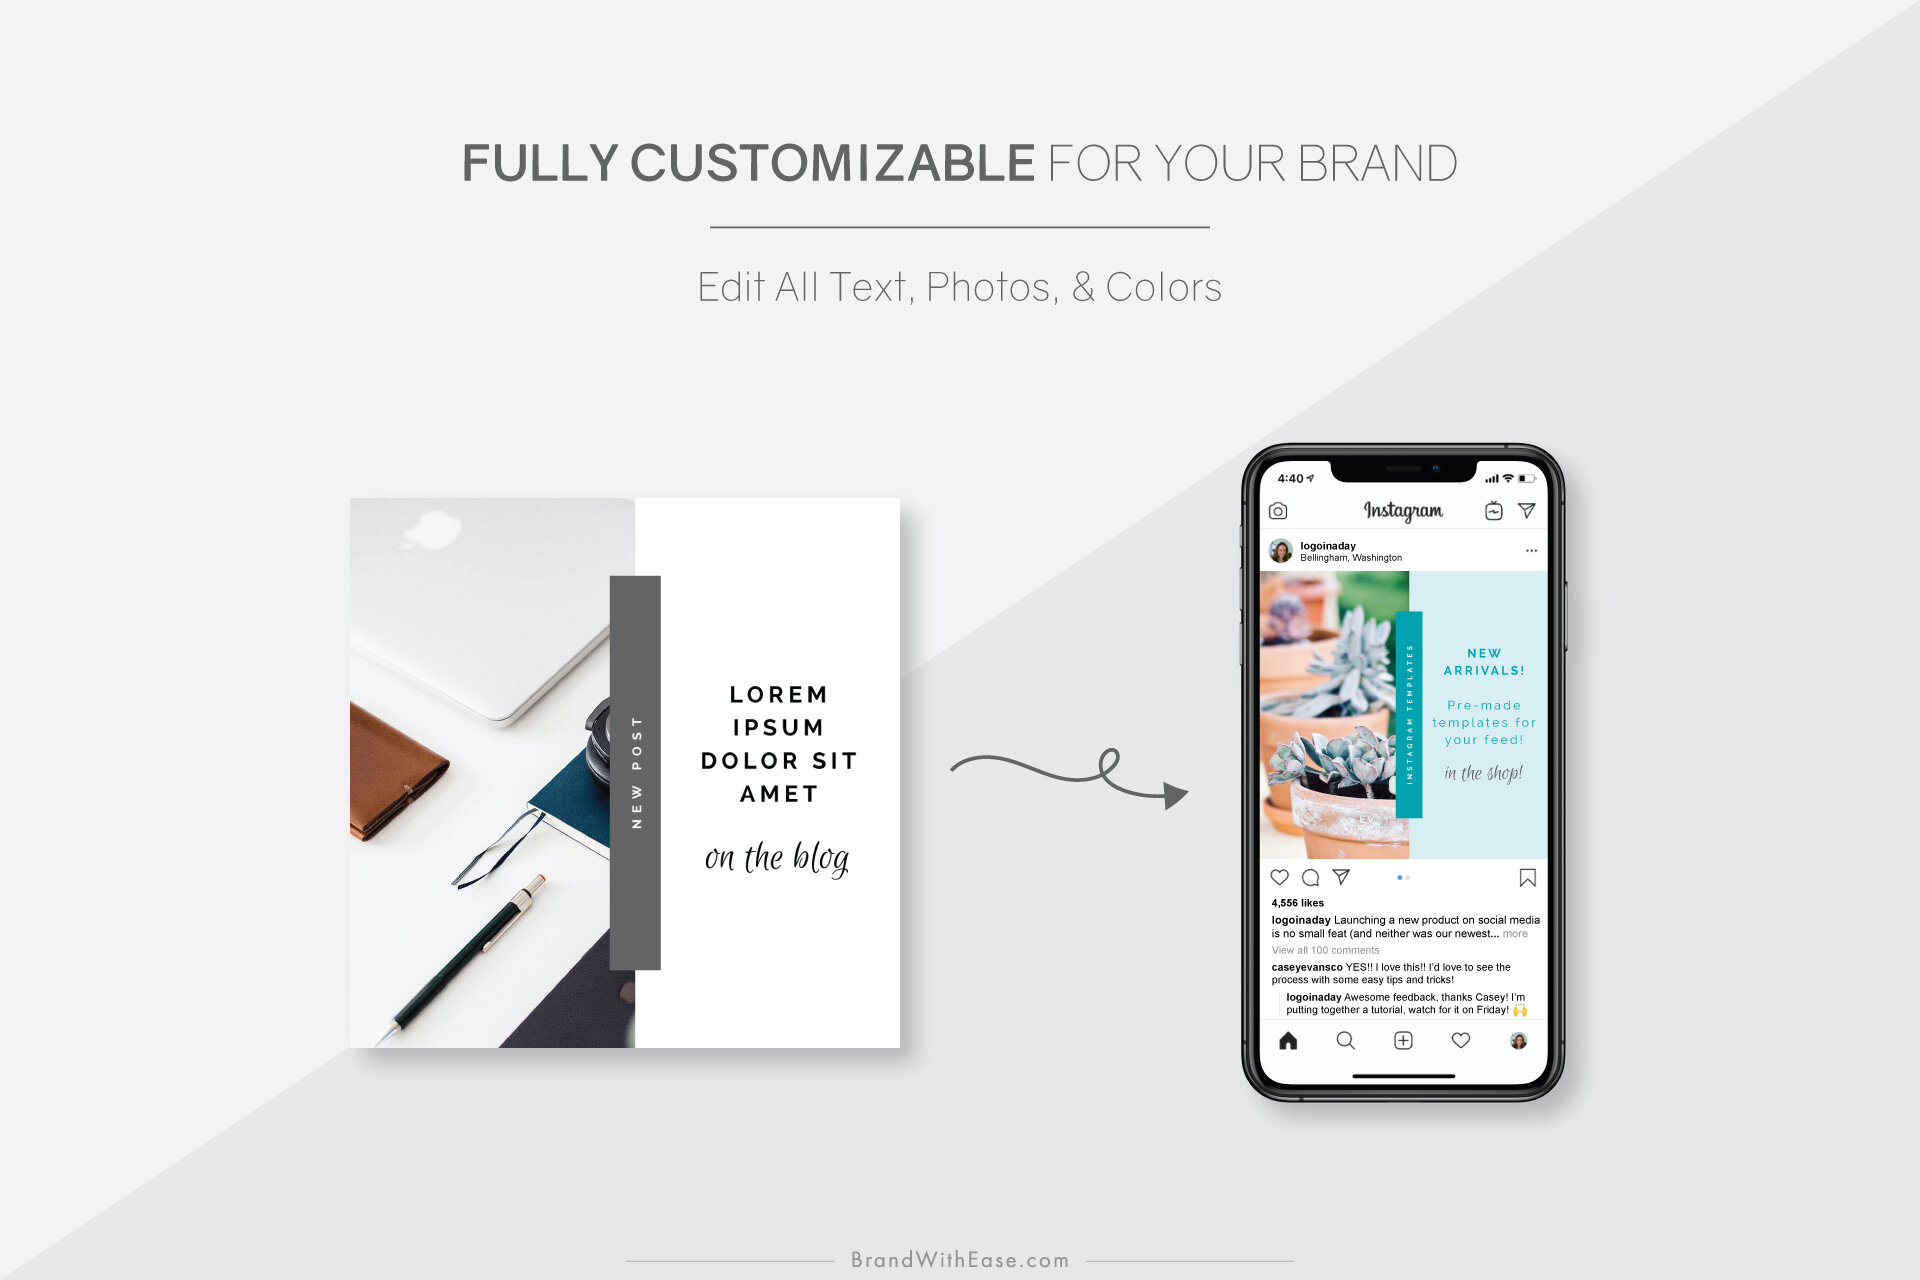 Brand-With-Ease-Instagram-Charcoal-Photo-Pack-Customizable.jpg